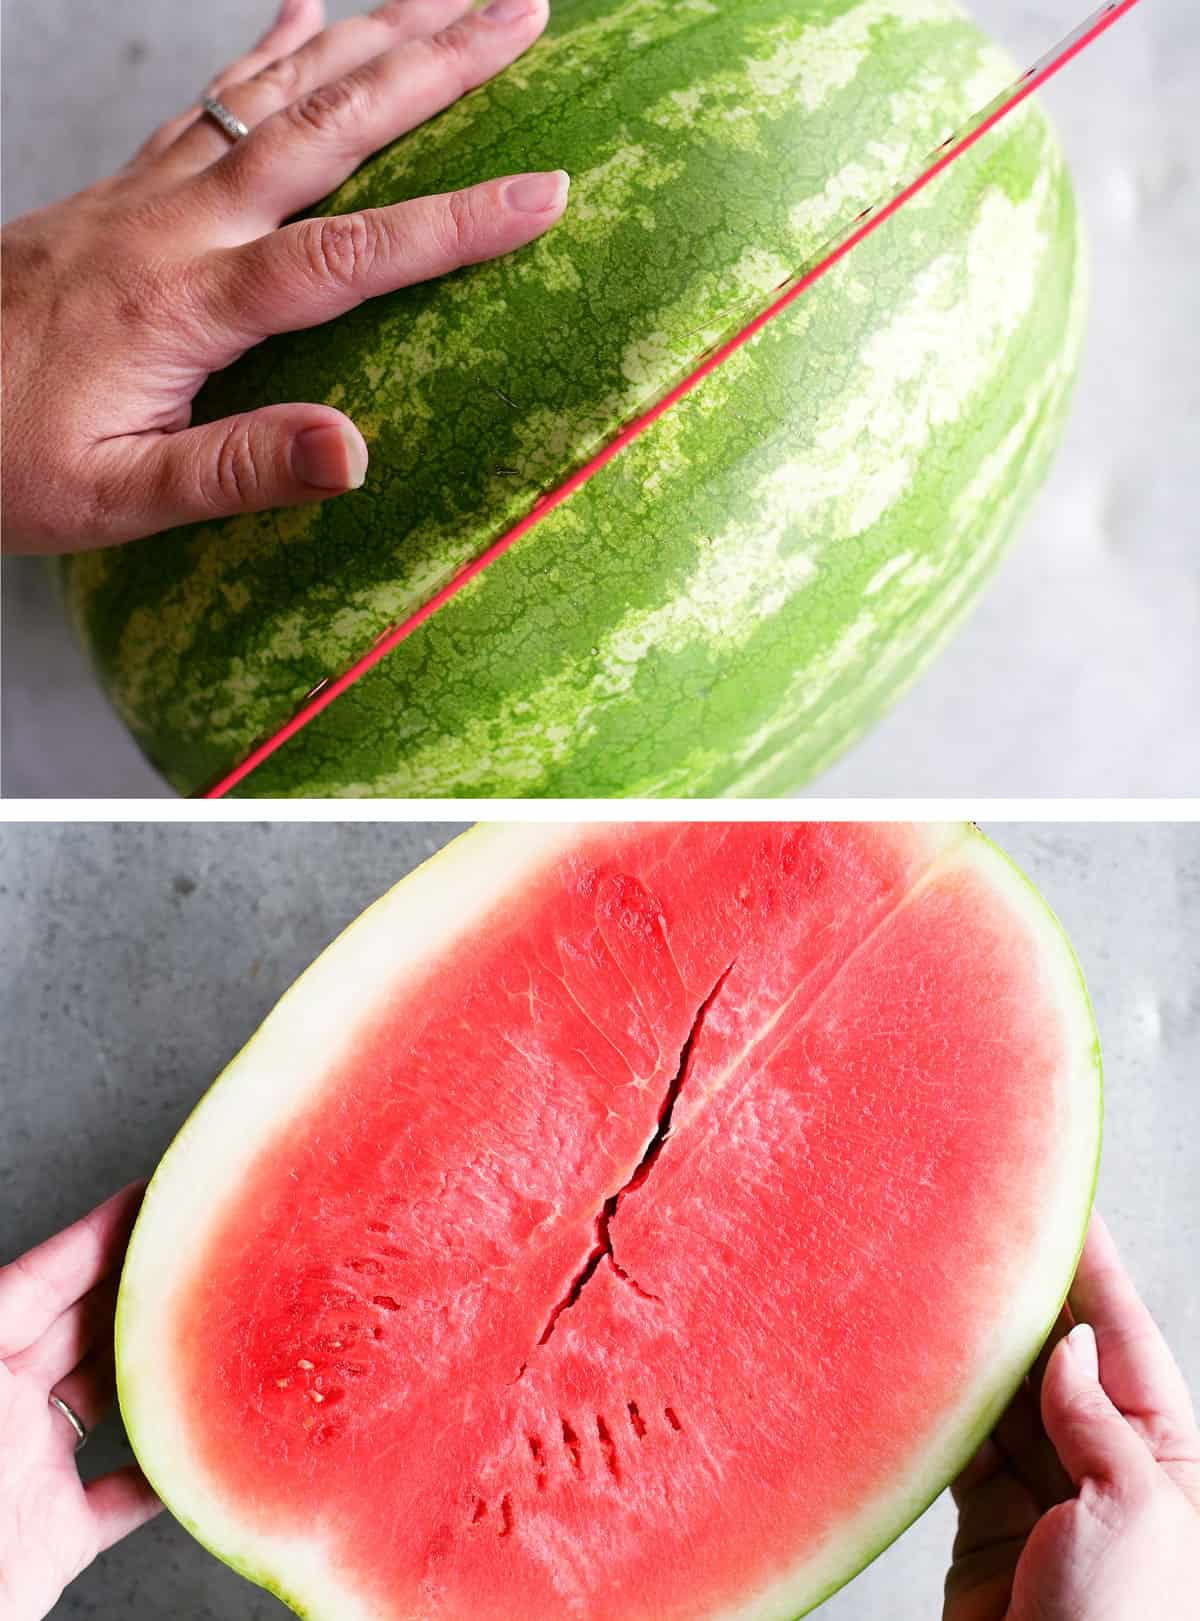 cutting open a watermelon with a knife